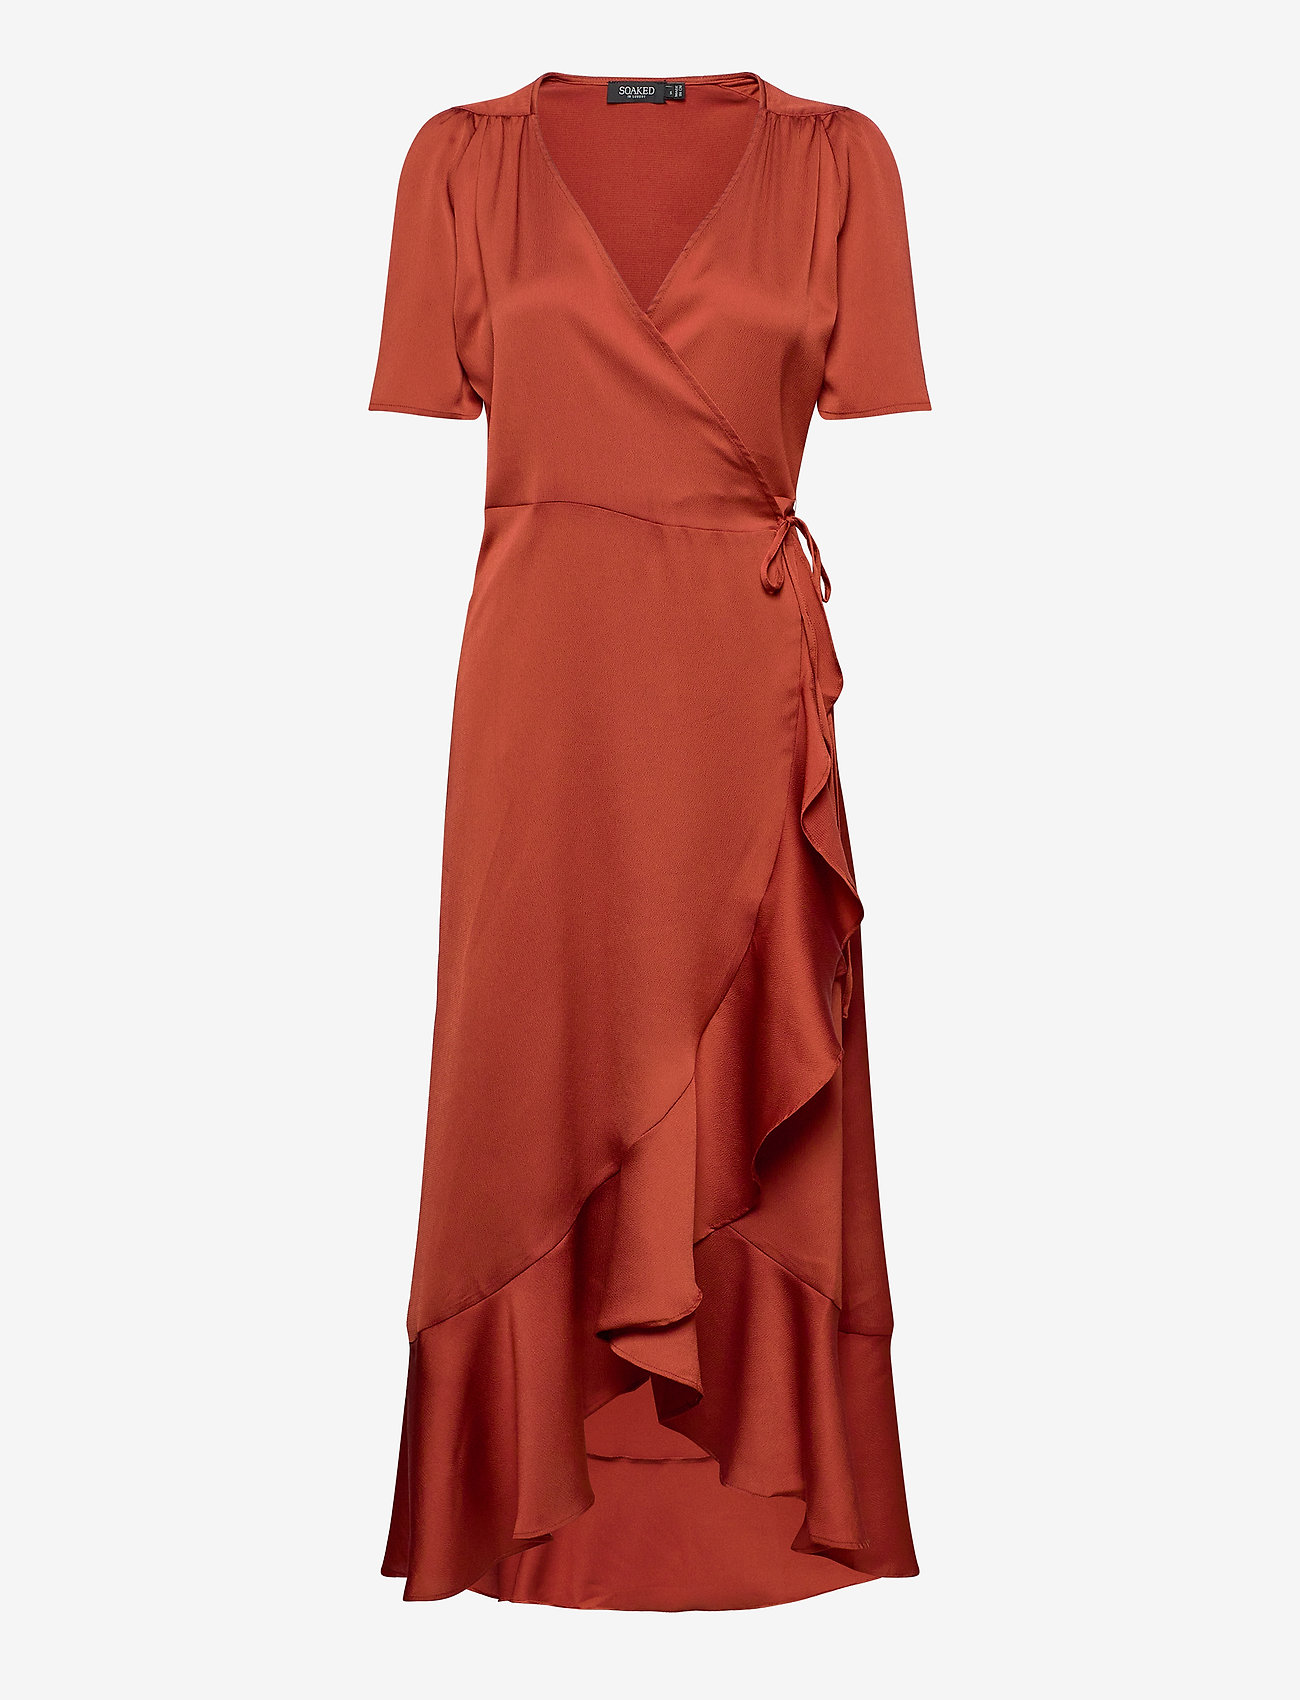 Sl Karven Dress (Barn Red) - Soaked in Luxury SOVaYC